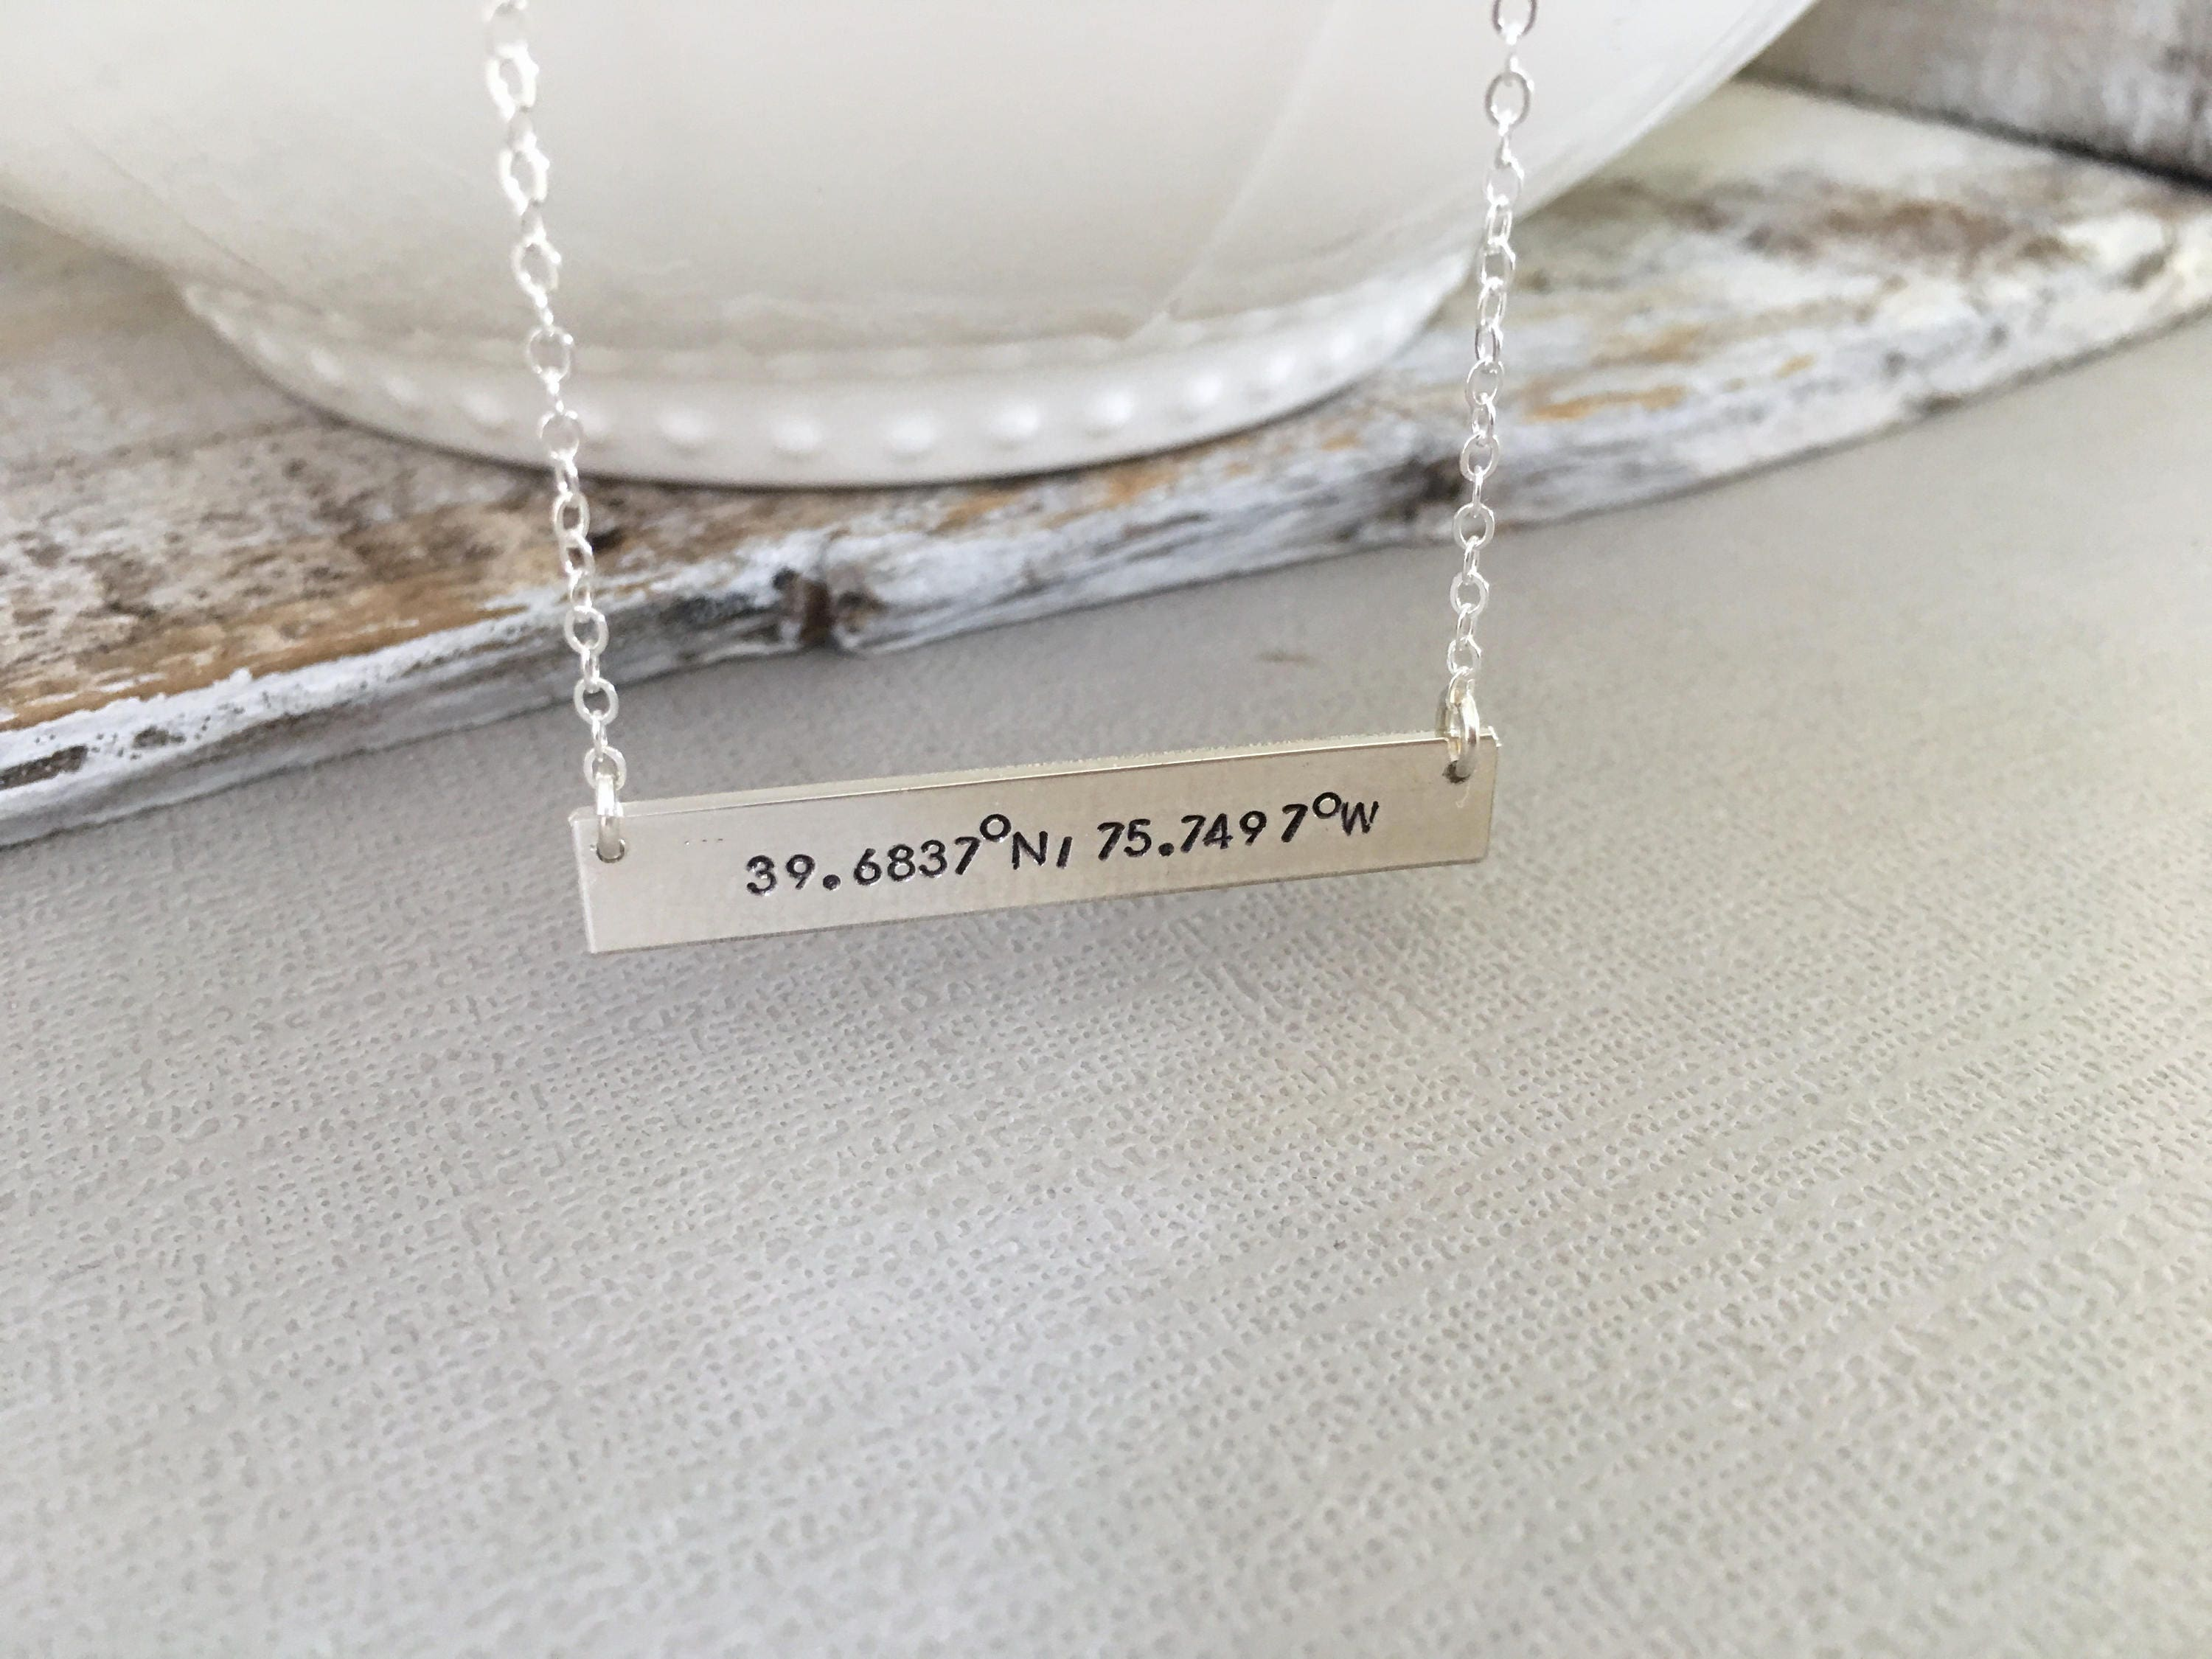 gift coordinate graduation zoom custom pqvl fullxfull necklace il listing friend